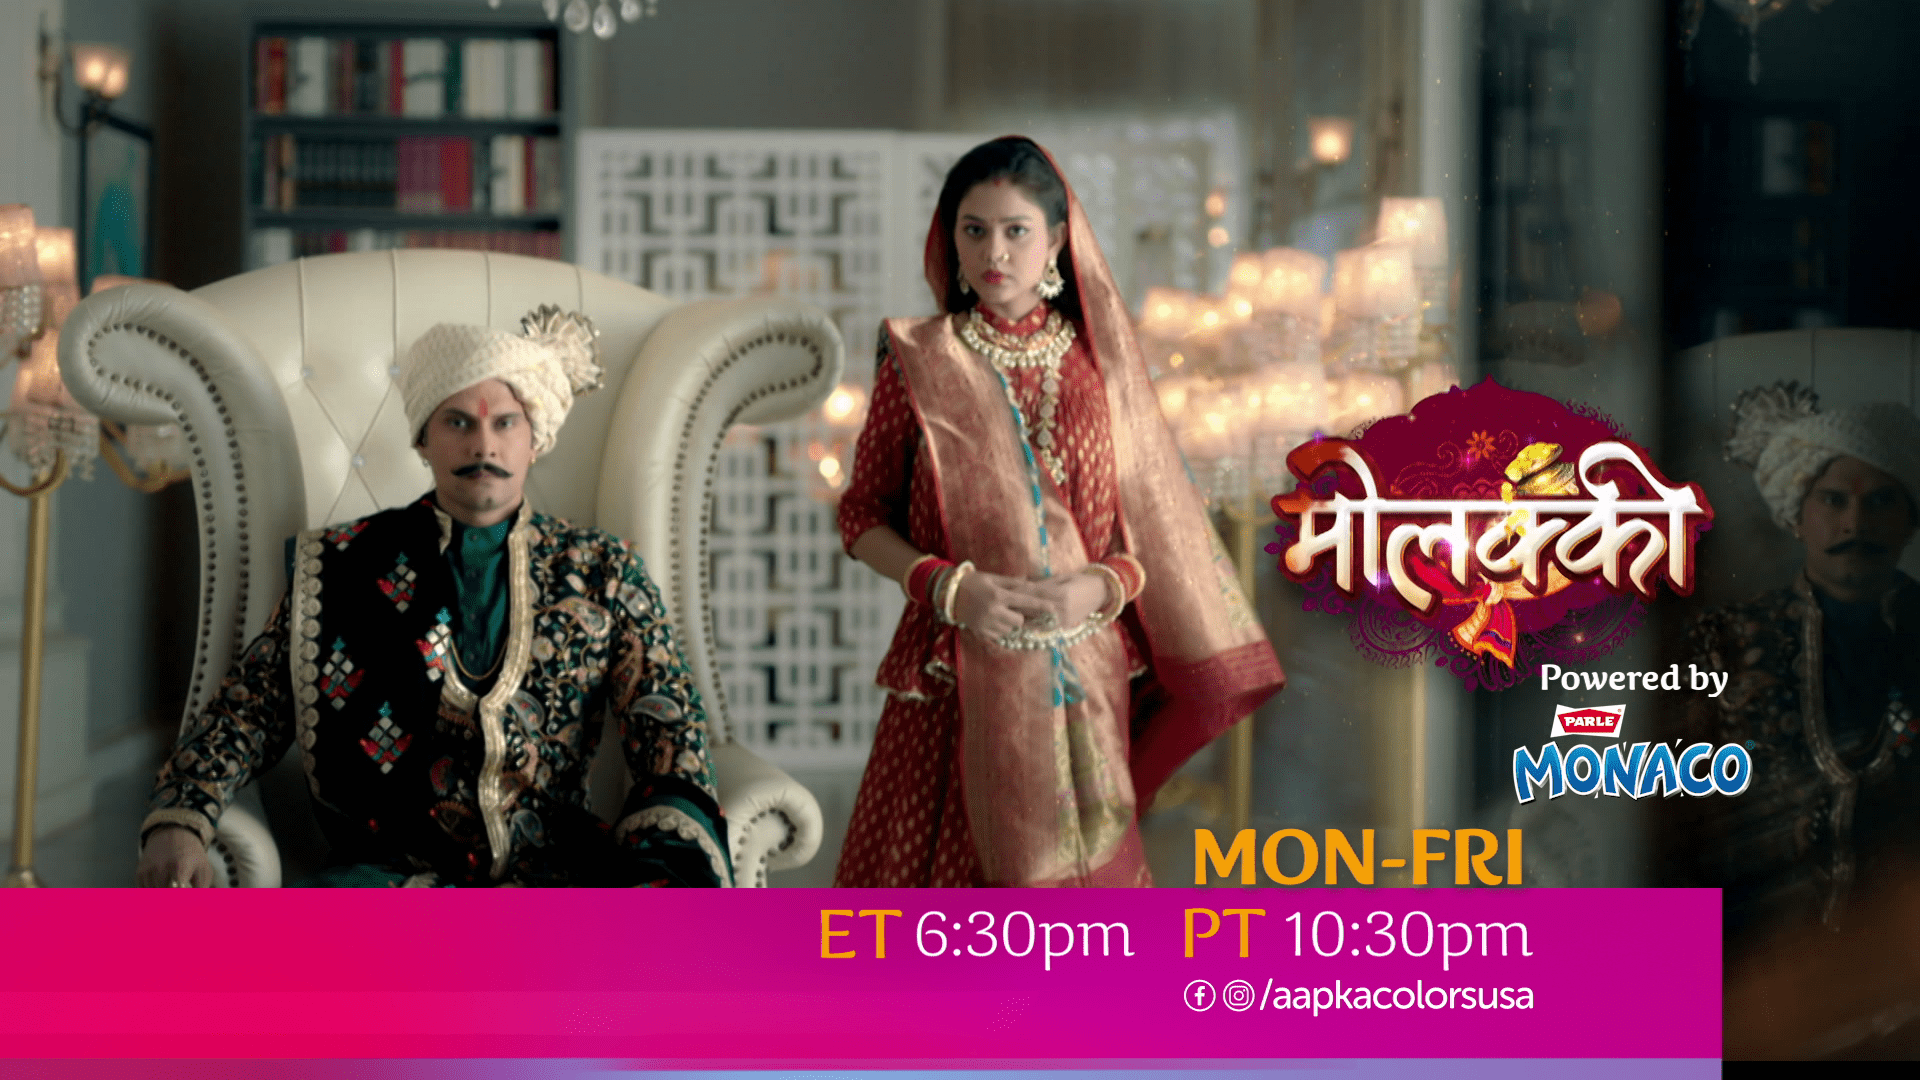 Watch Molkki Mon-Fri Et 6:30pm PT 10:30pm on Aapka Colors